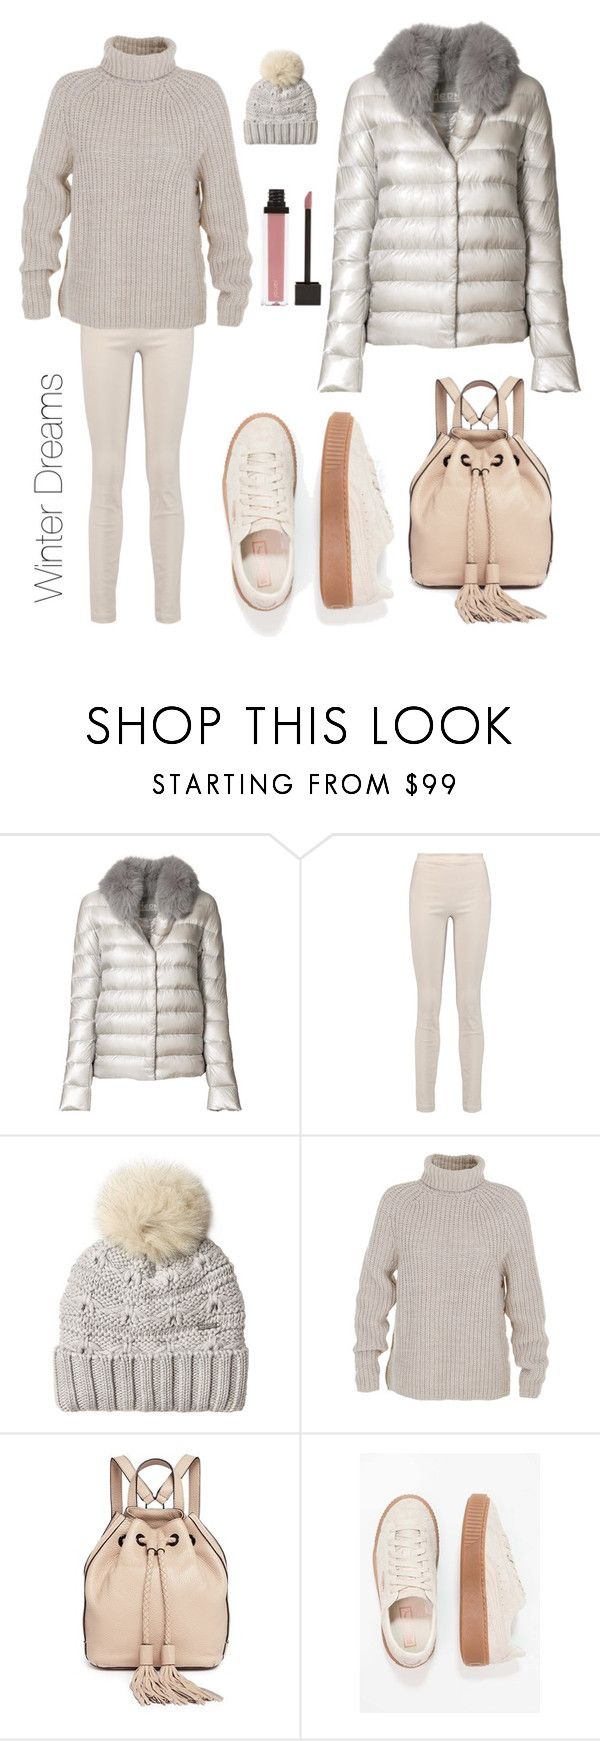 """Winter Dreams"" by katerina-giannakaki ❤ liked on Polyvore featuring Herno, Donna Karan, Woolrich, TIBI and Rebecca Minkoff"